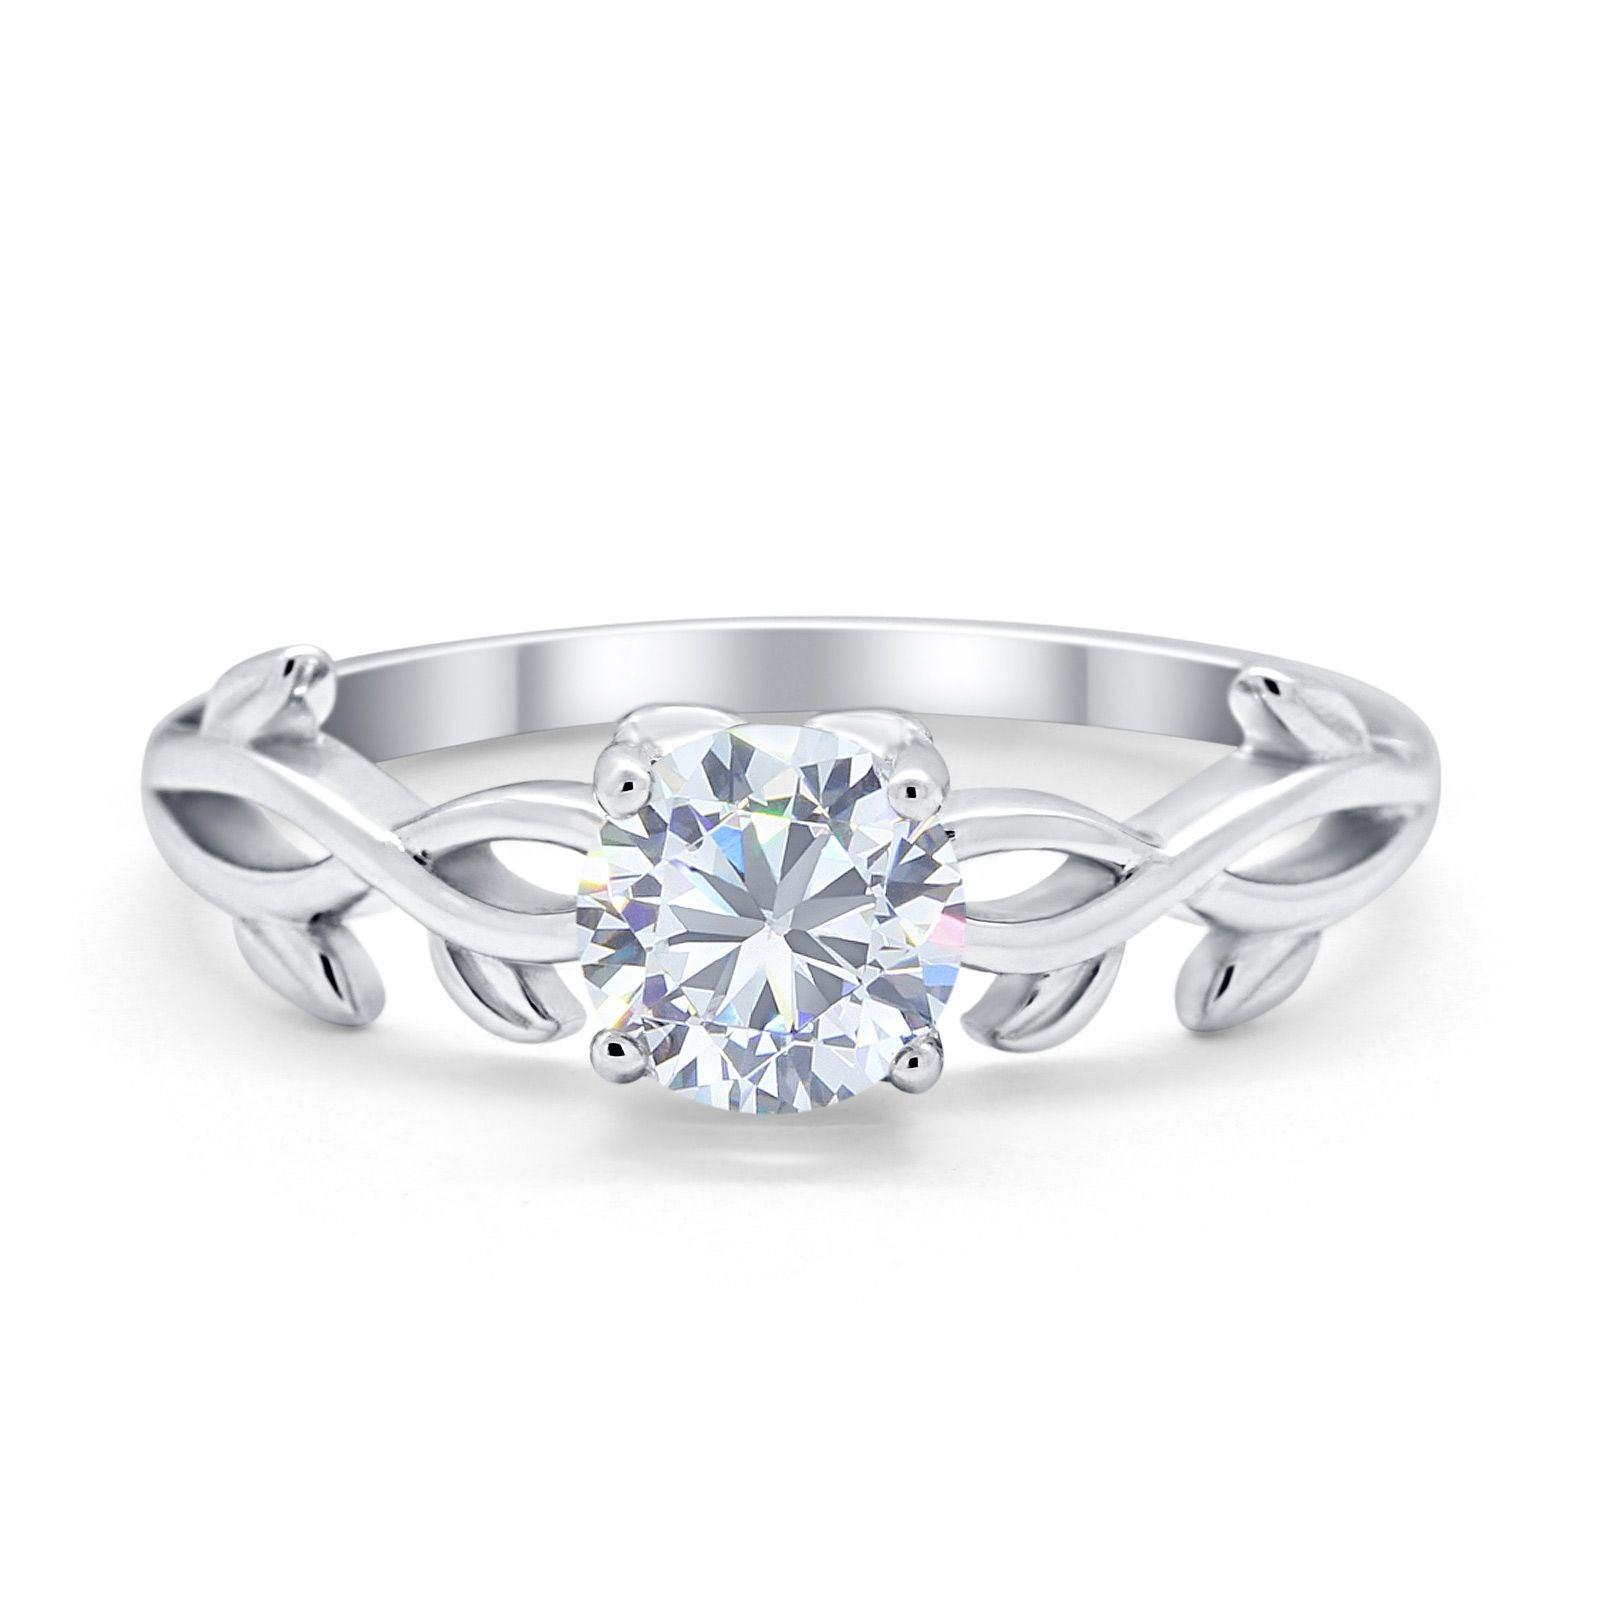 Solitaire Wedding Ring Round Simulated Cubic Zirconia 925 Sterling Silver